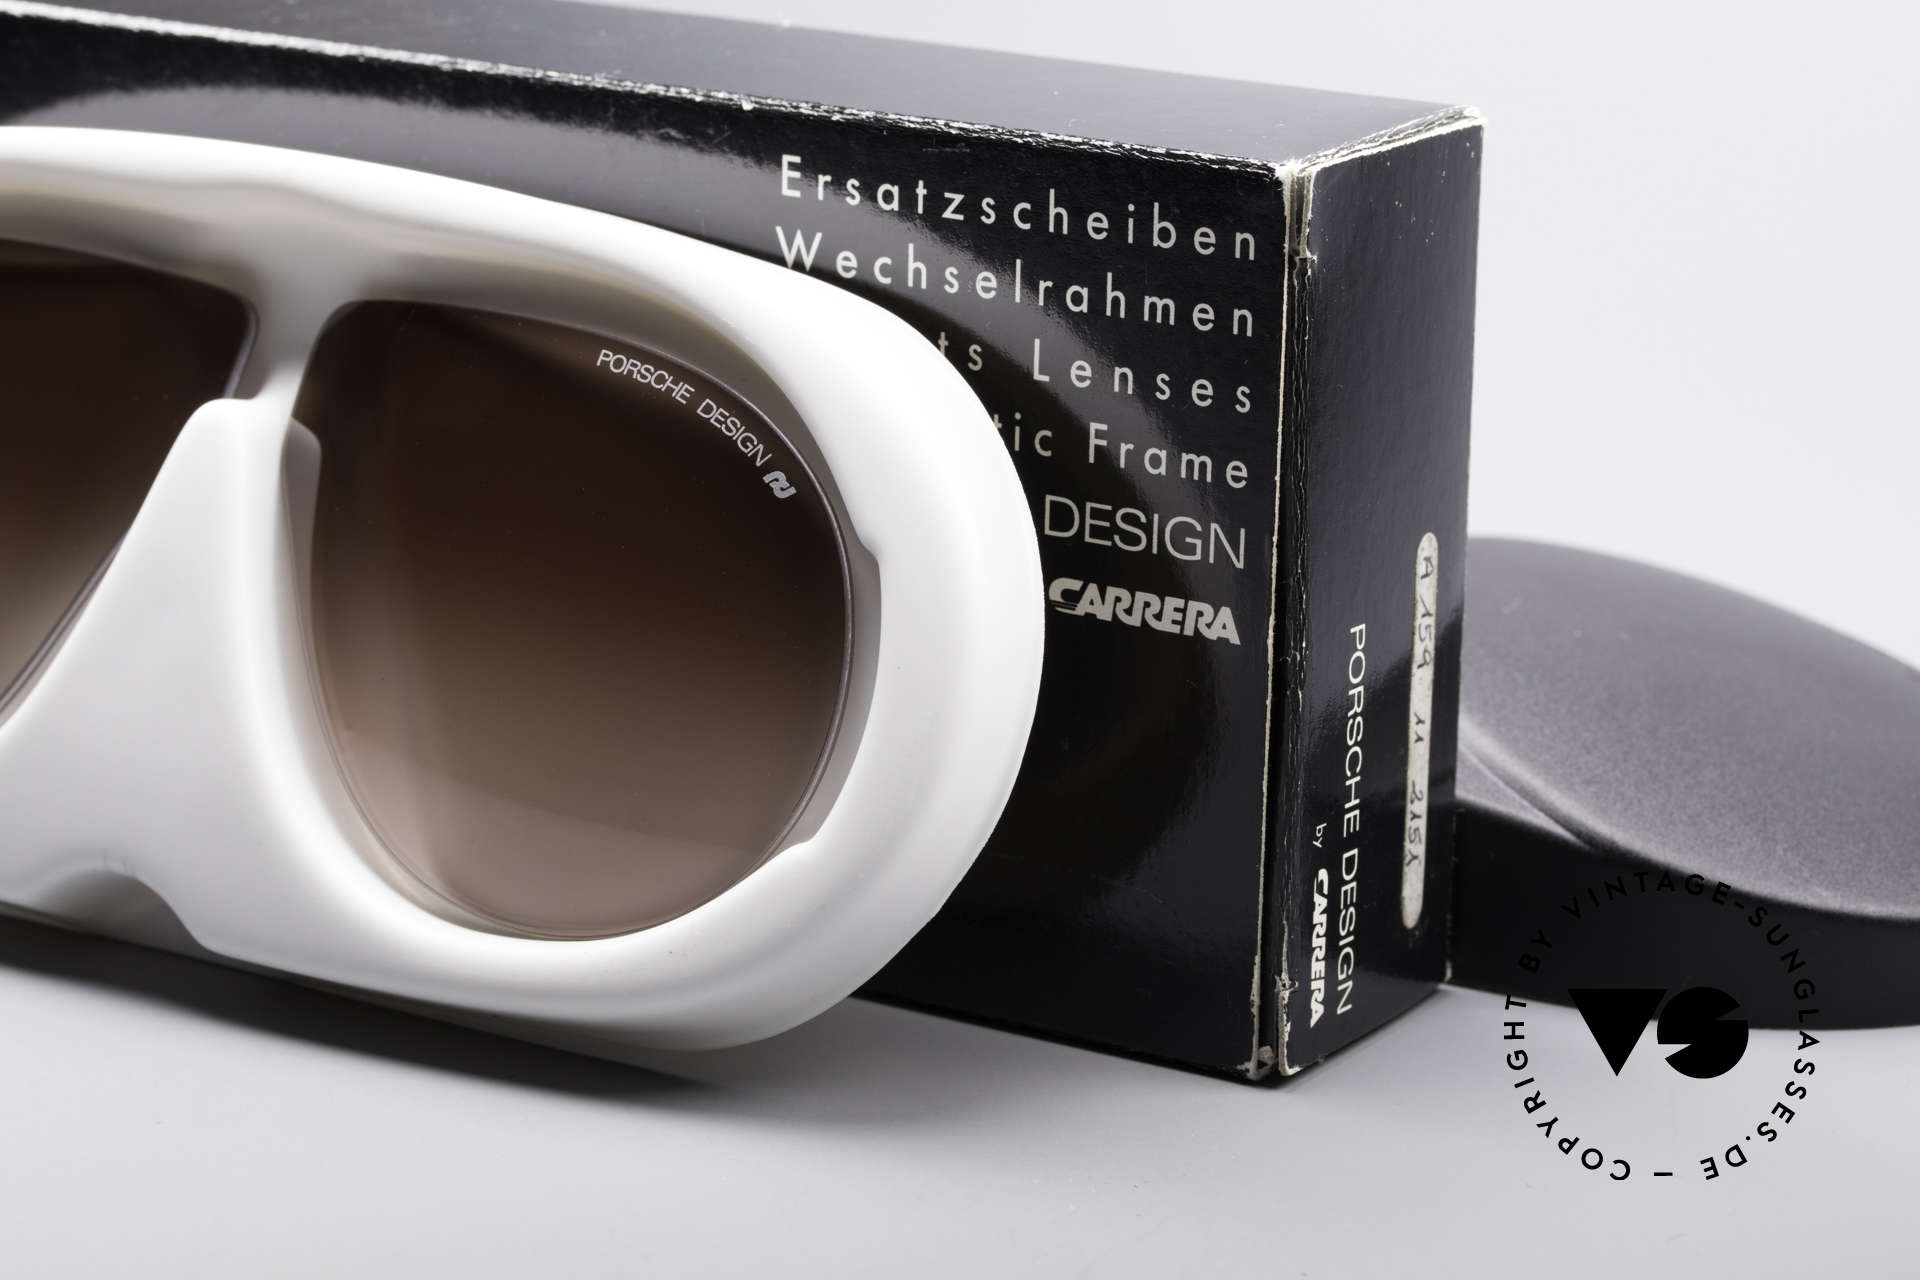 Porsche 5628 Lenses 80's Folding Sunglasses, original lenses from the 1980's (made in Germany), Made for Men and Women